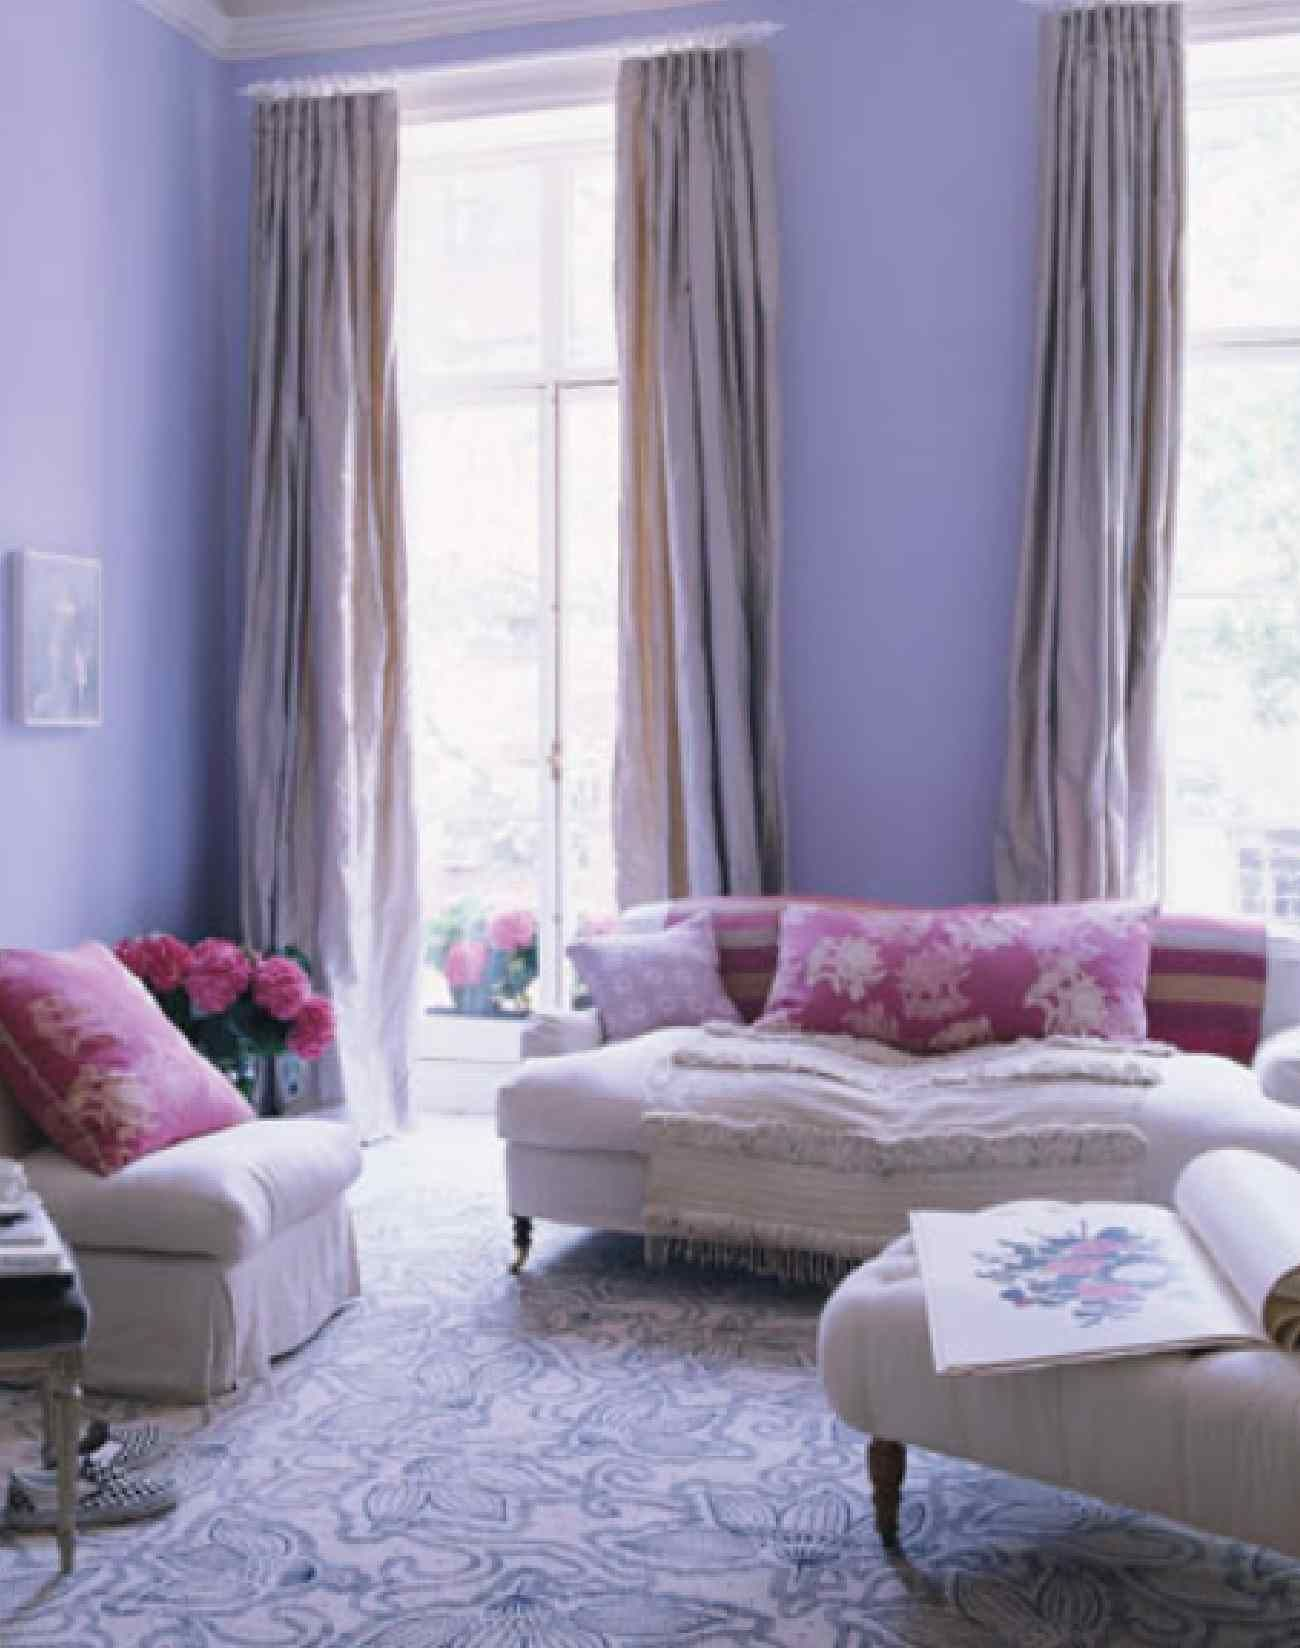 Light Airy Pink Purple Color Scheme Which Is Packed Full Of Chic